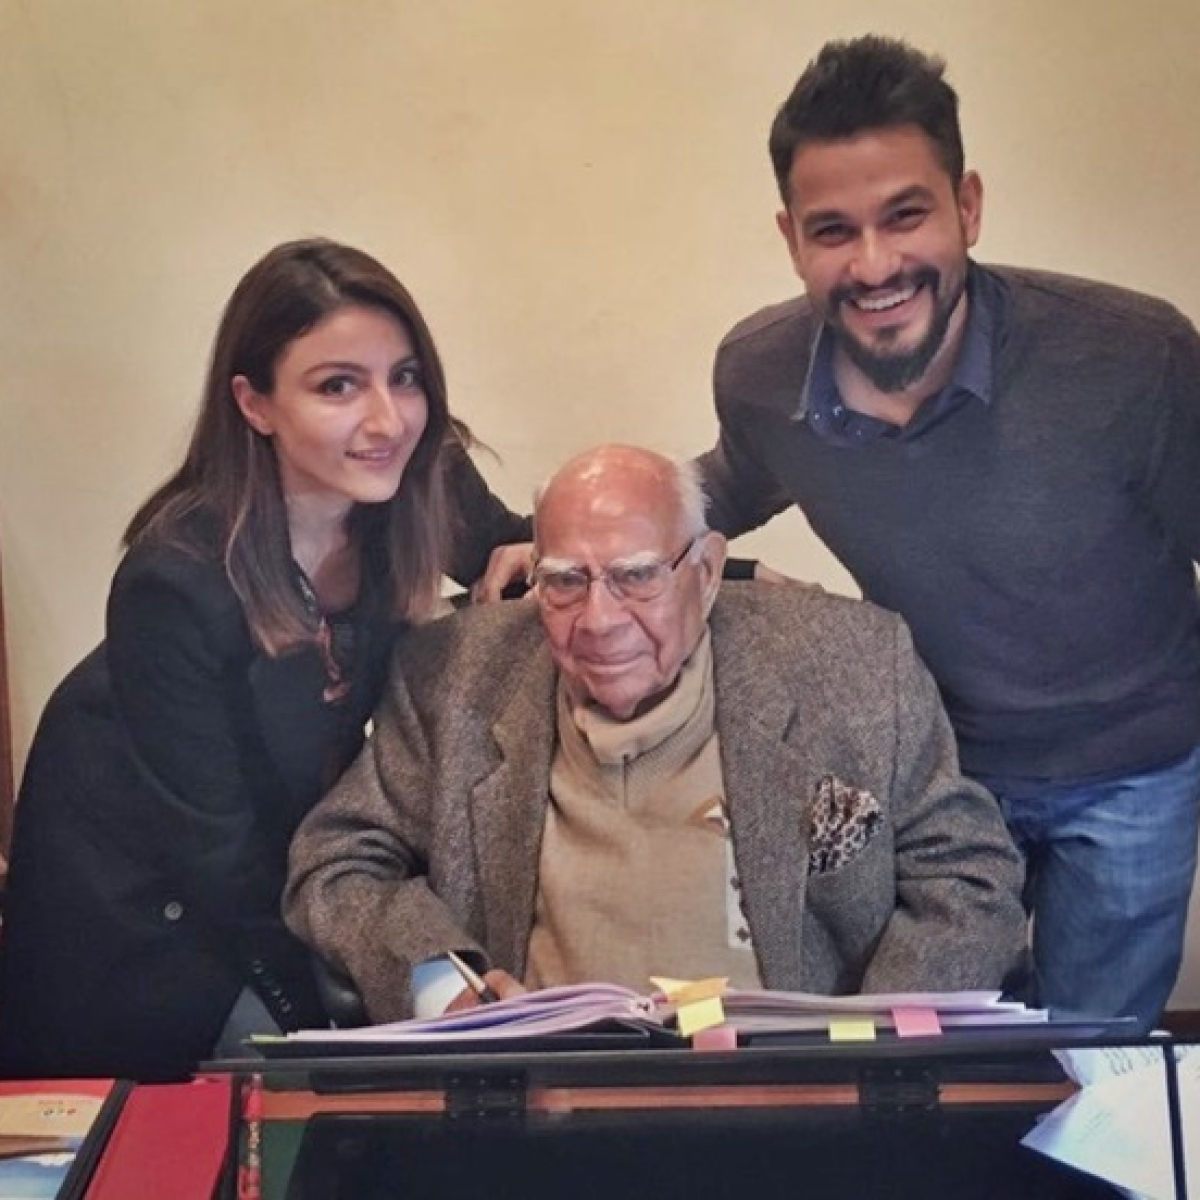 It's an ambitious project and it will take some time: Soha Ali Khan on Ram Jethmalani biopic